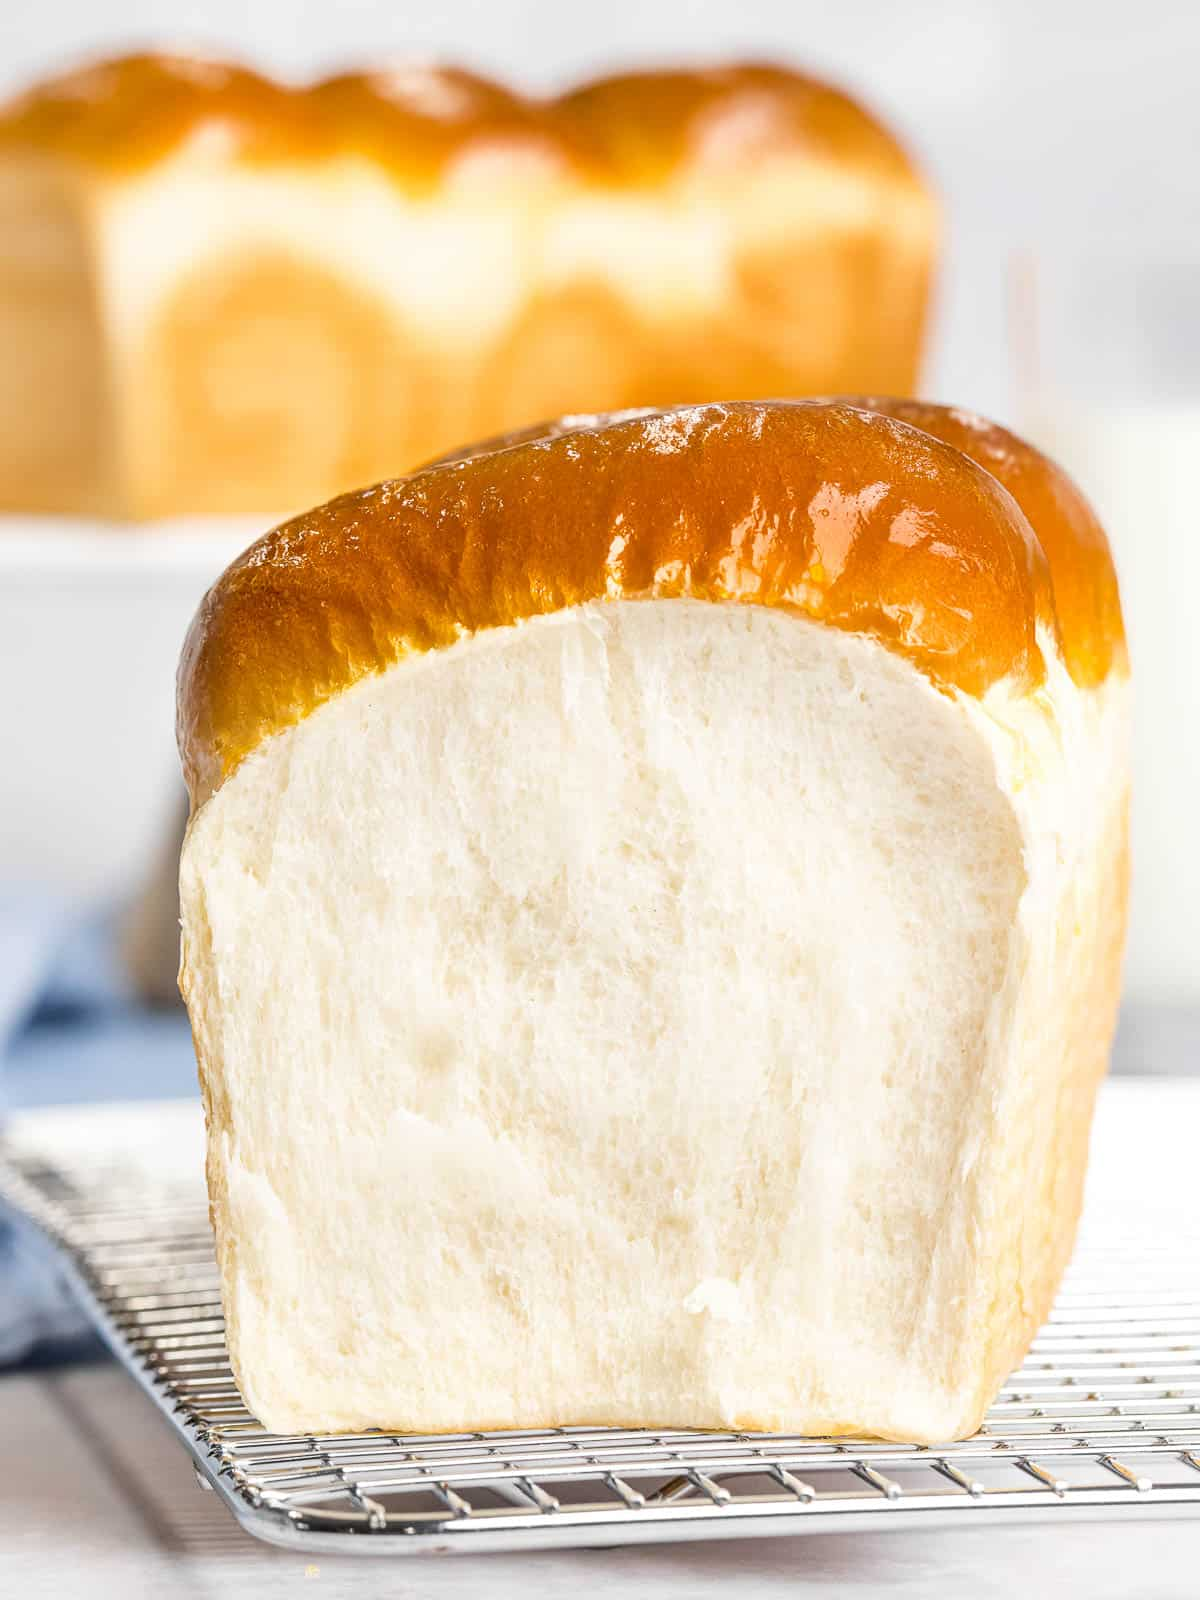 Japanese milk bread with soft, fluffy, light crumb and golden brown crust.